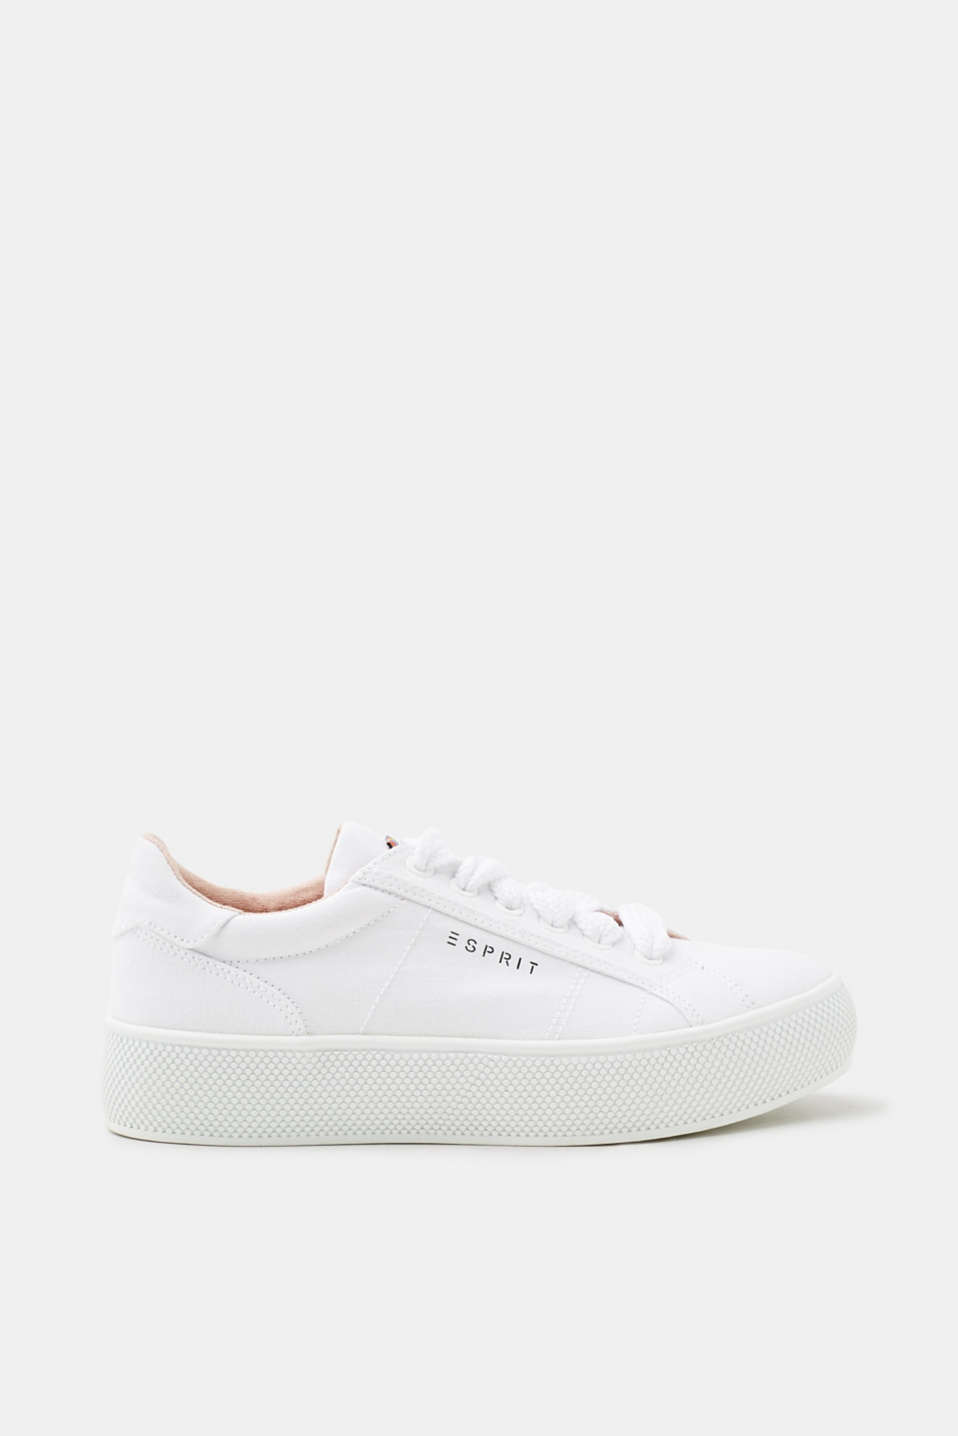 Esprit Plateau-Sneaker in Denim-Optik für Damen, Größe 39, Old Pink